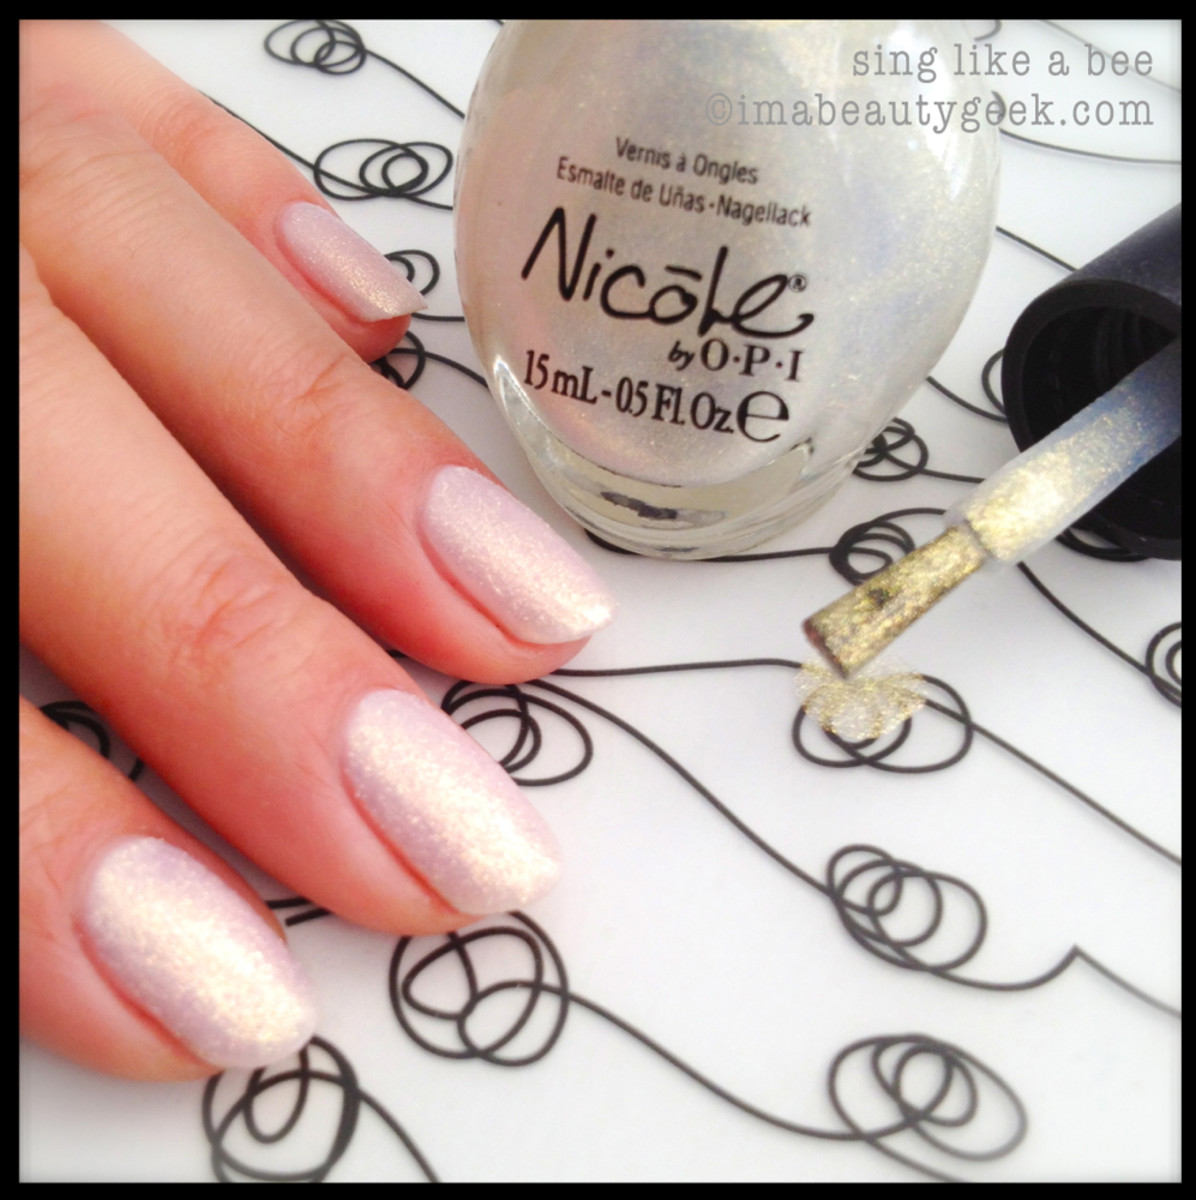 Nicole by OPI Carrie Underwood Sing Like a Bee